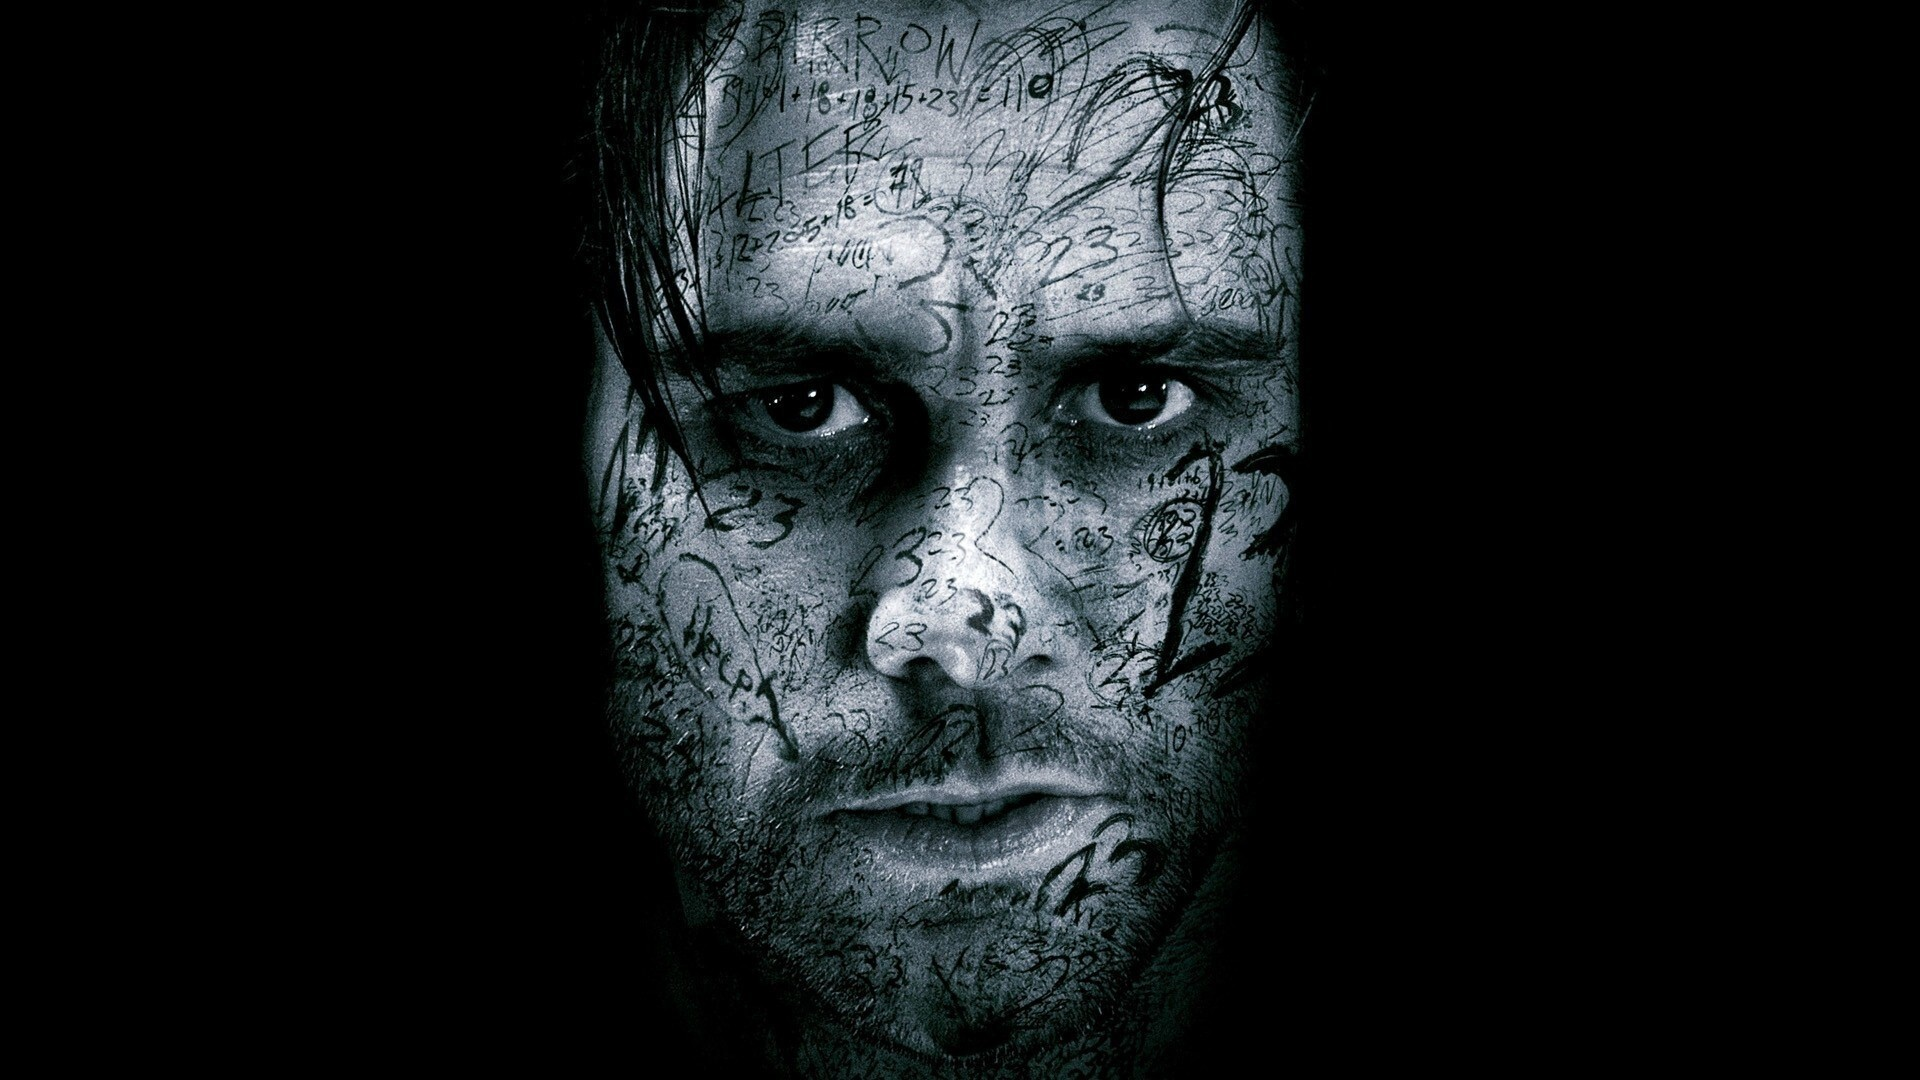 Ghost Face of Jim Carrey in Black Background | HD Wallpapers